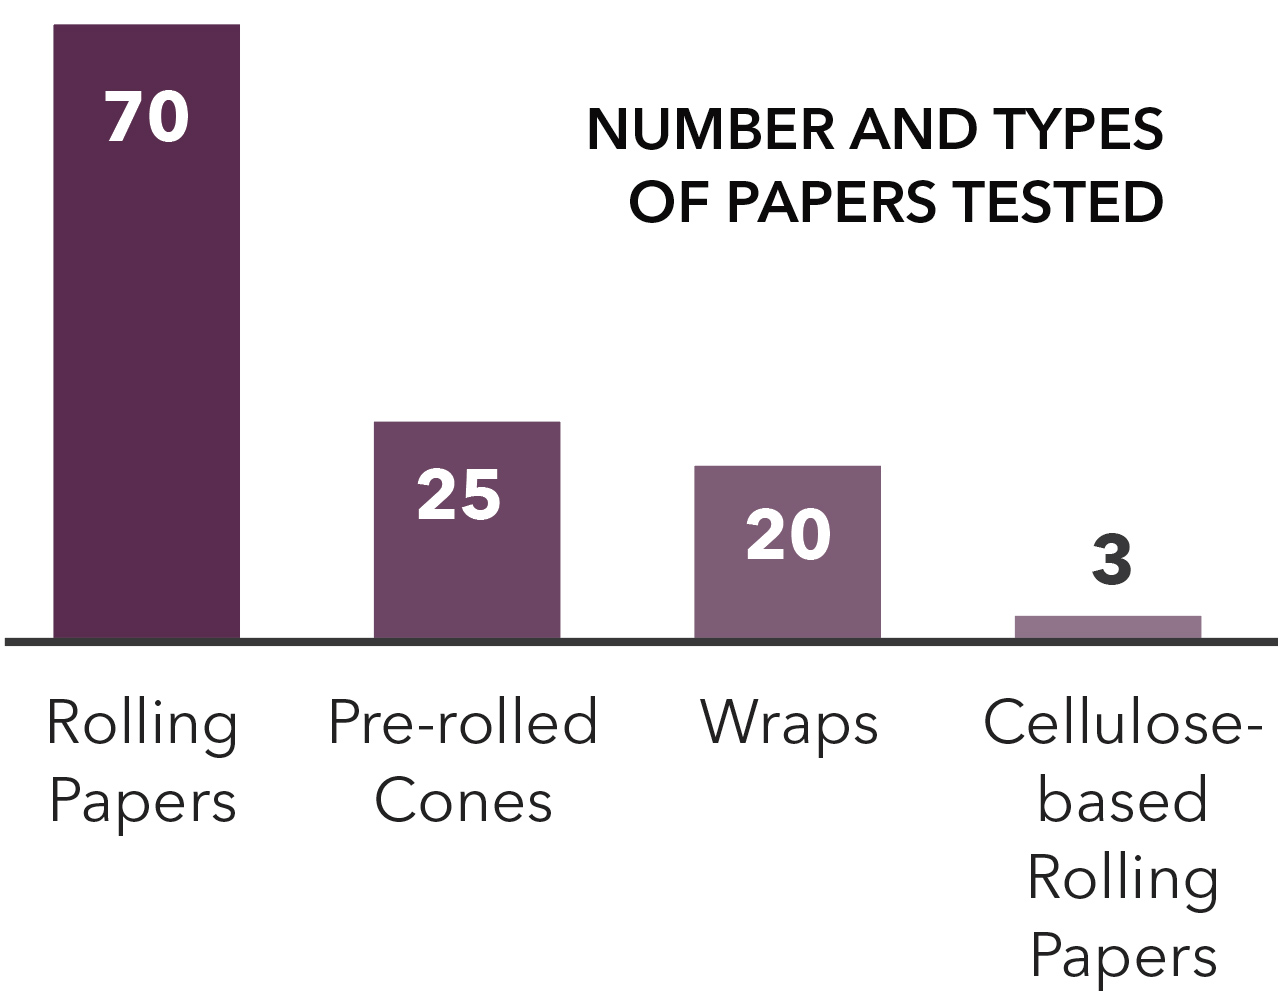 Number and types of rolling papers tested